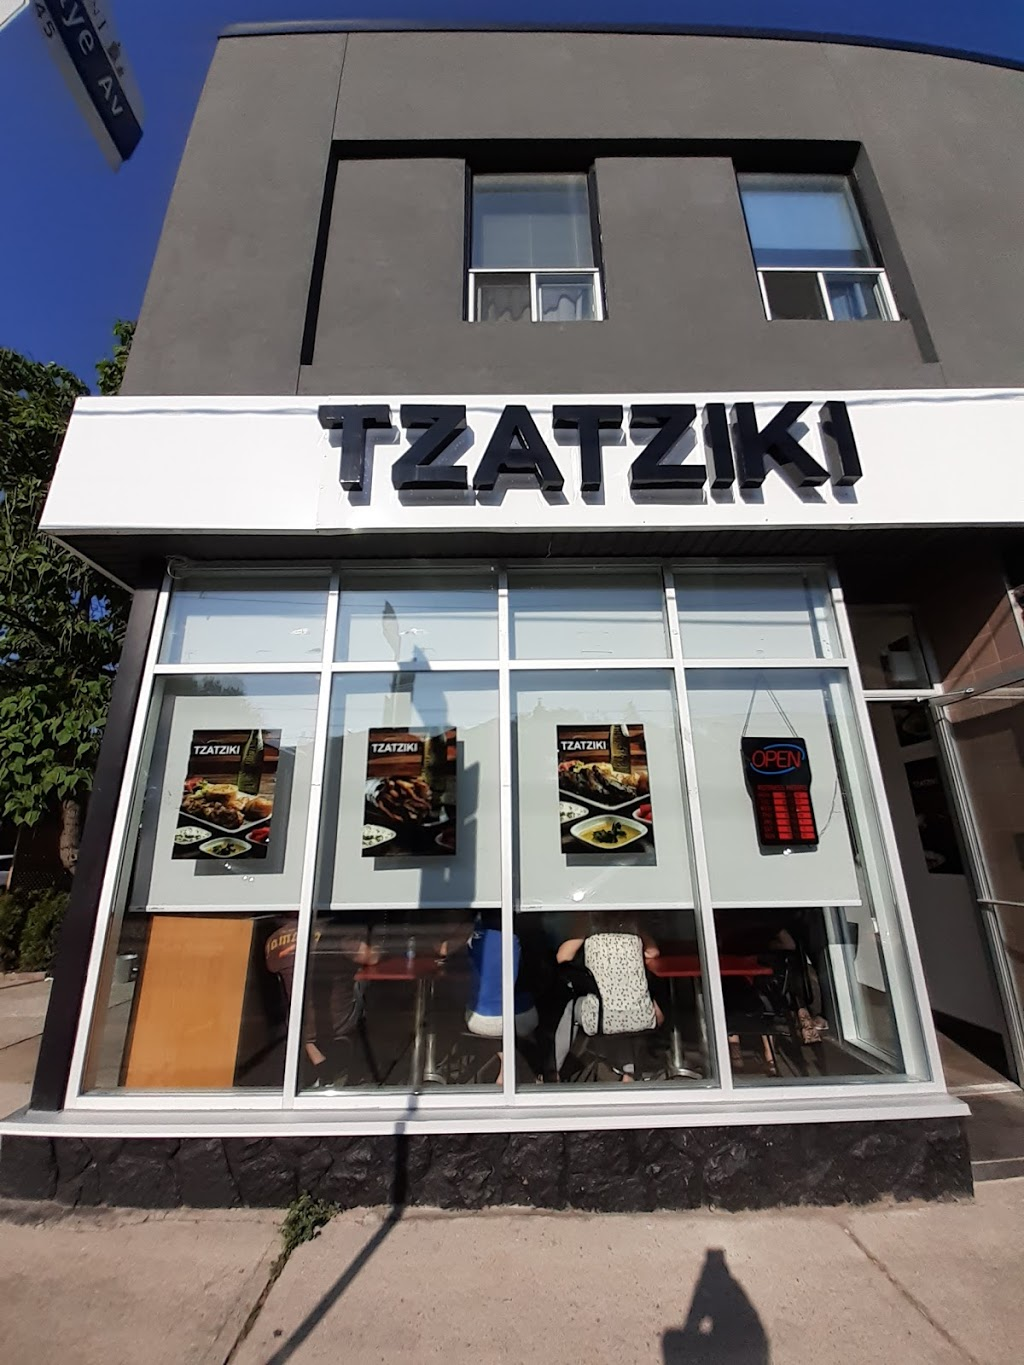 Tzatziki | restaurant | 425 Jane St, York, ON M6S 3Z7, Canada | 4166043400 OR +1 416-604-3400